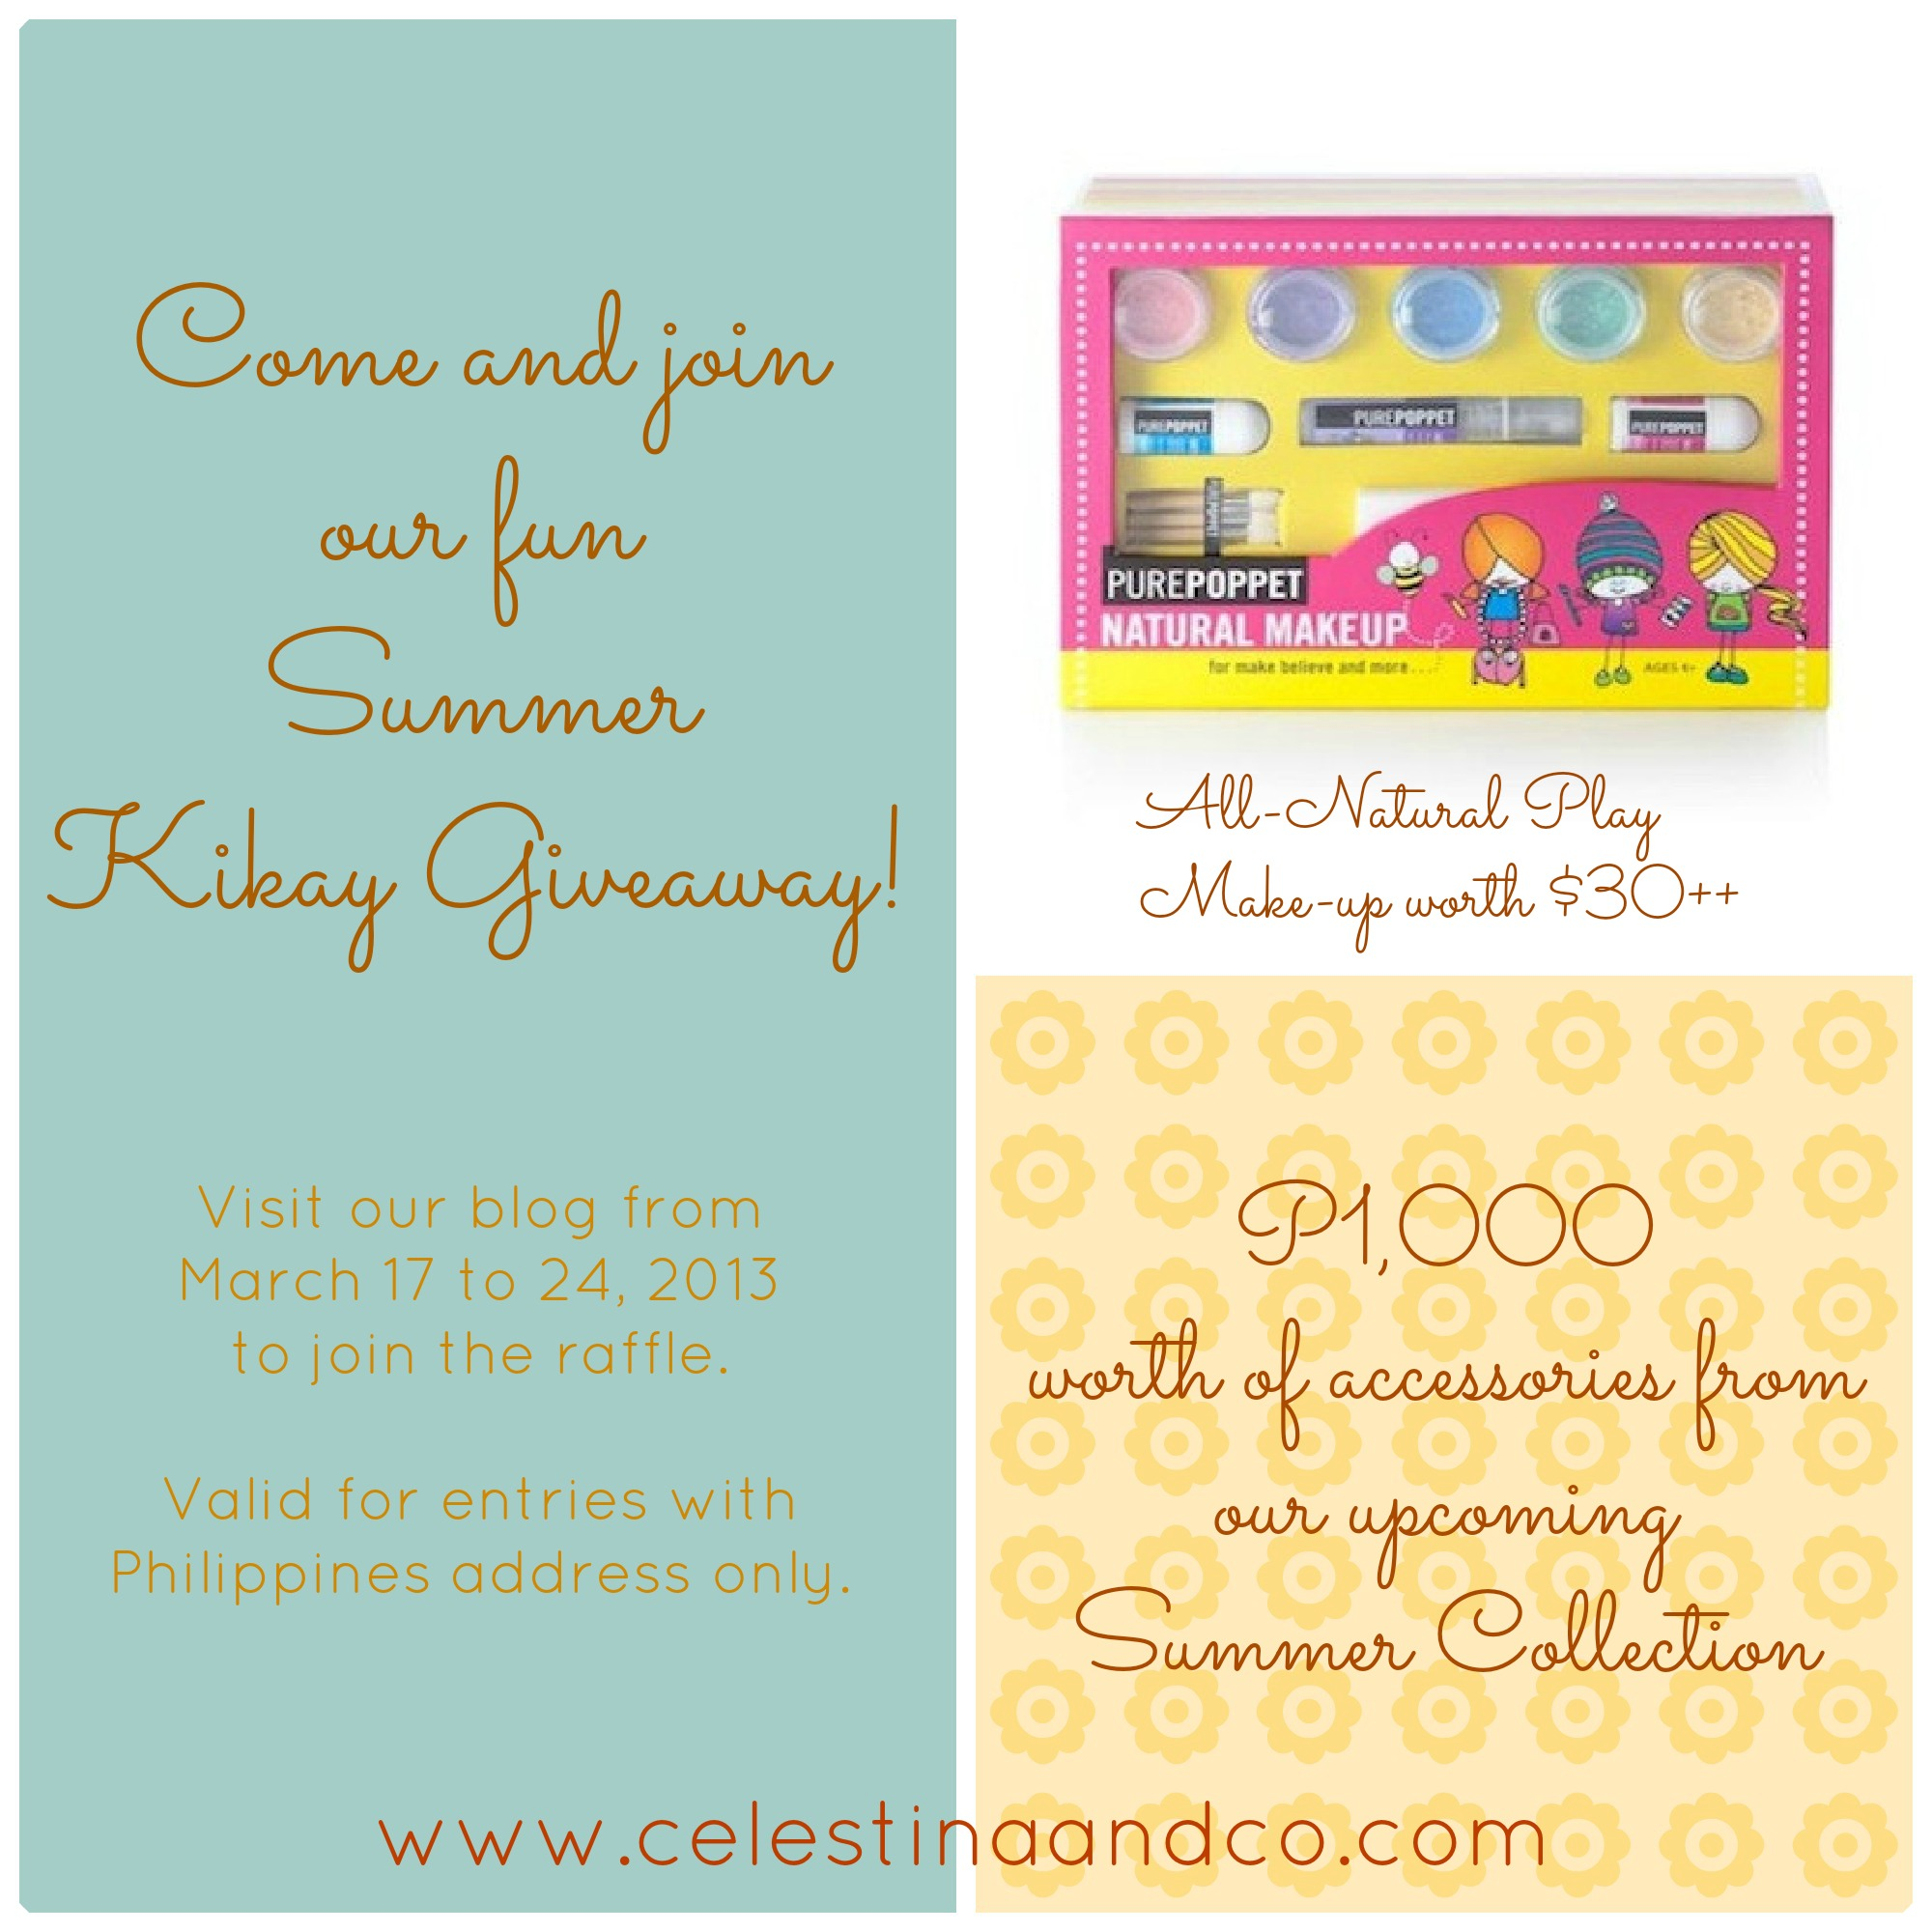 Contest: Celestina & Co.'s Summer Raffle